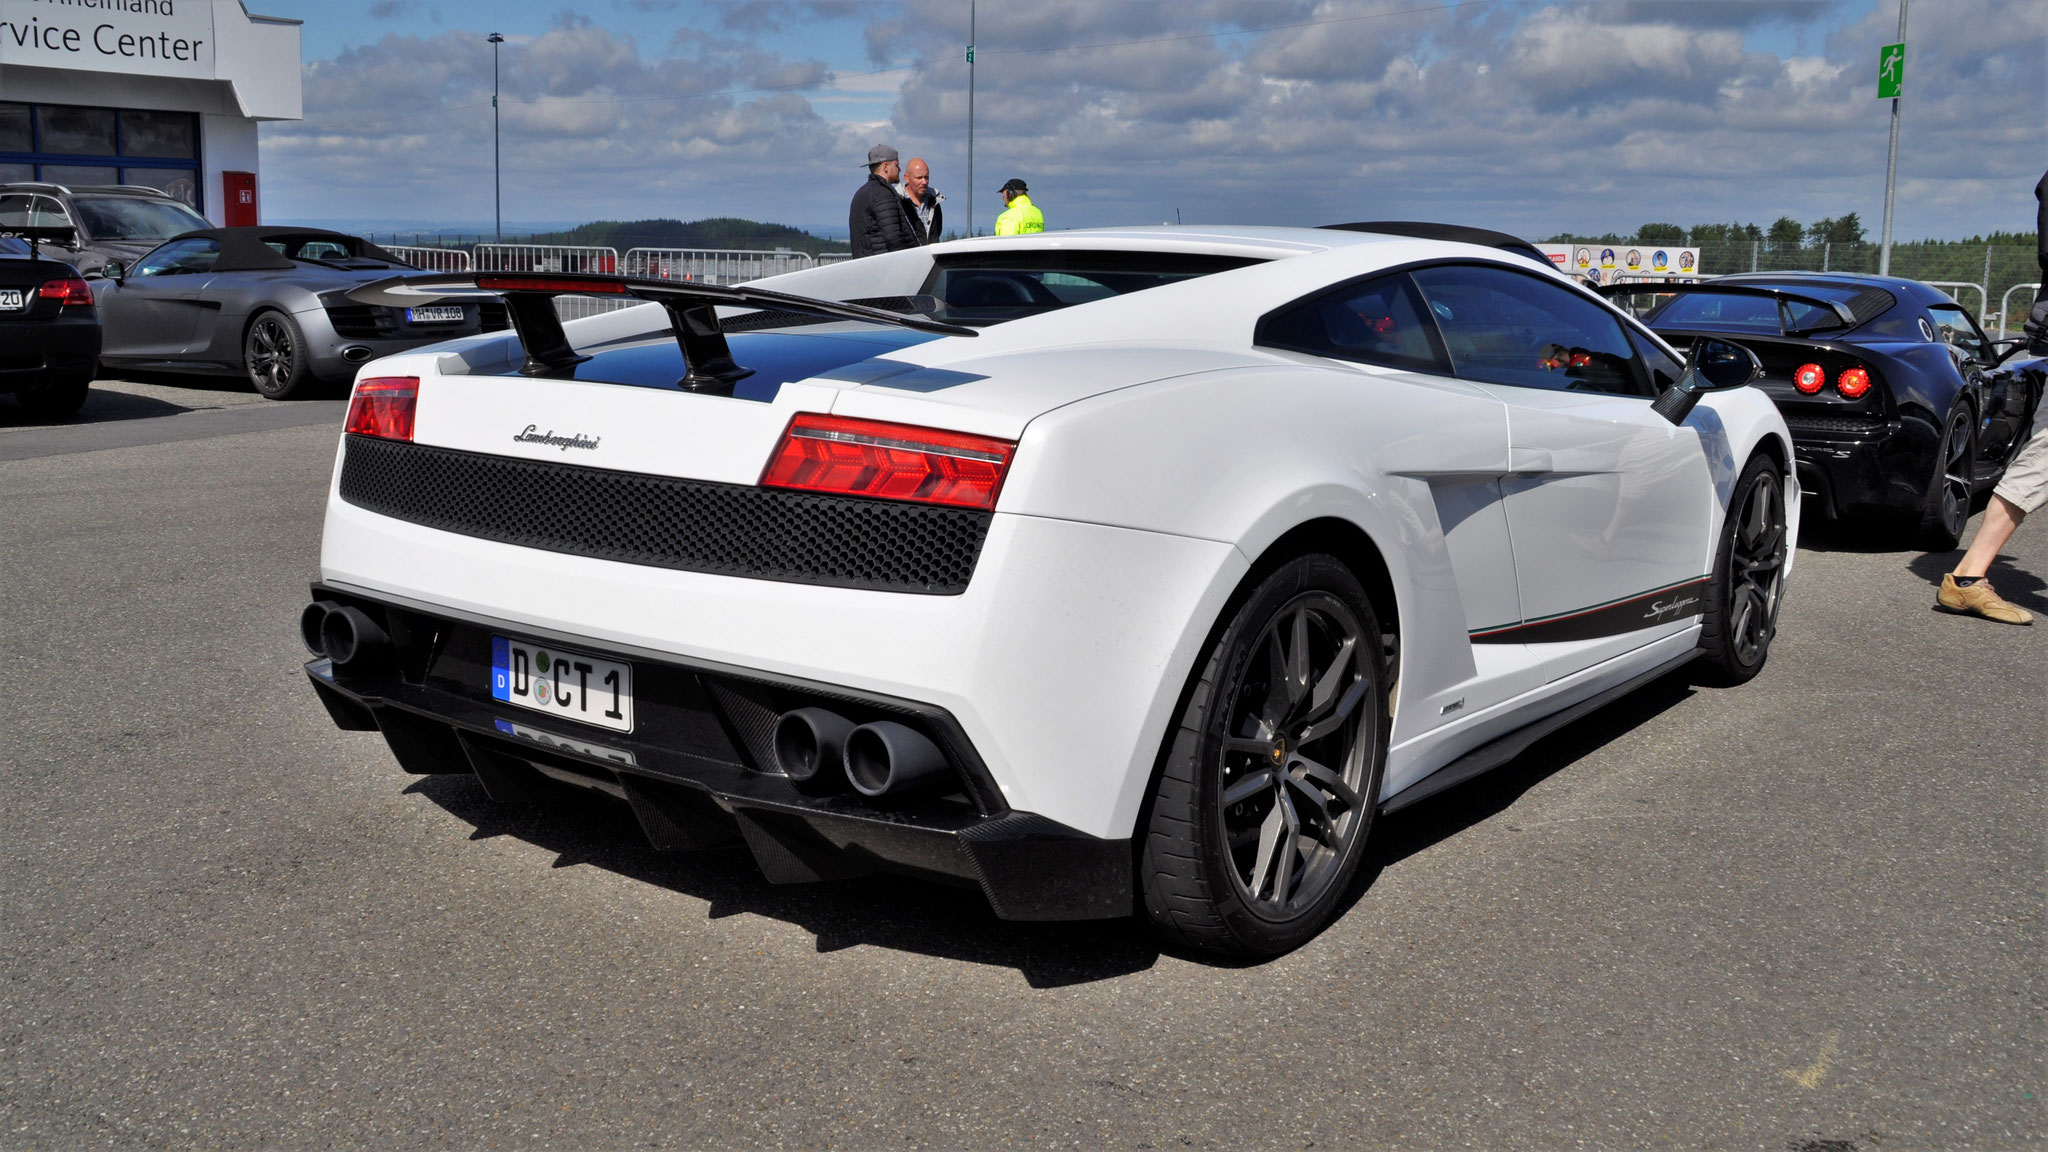 Lamborghini Gallardo Superleggera - D-CT-1